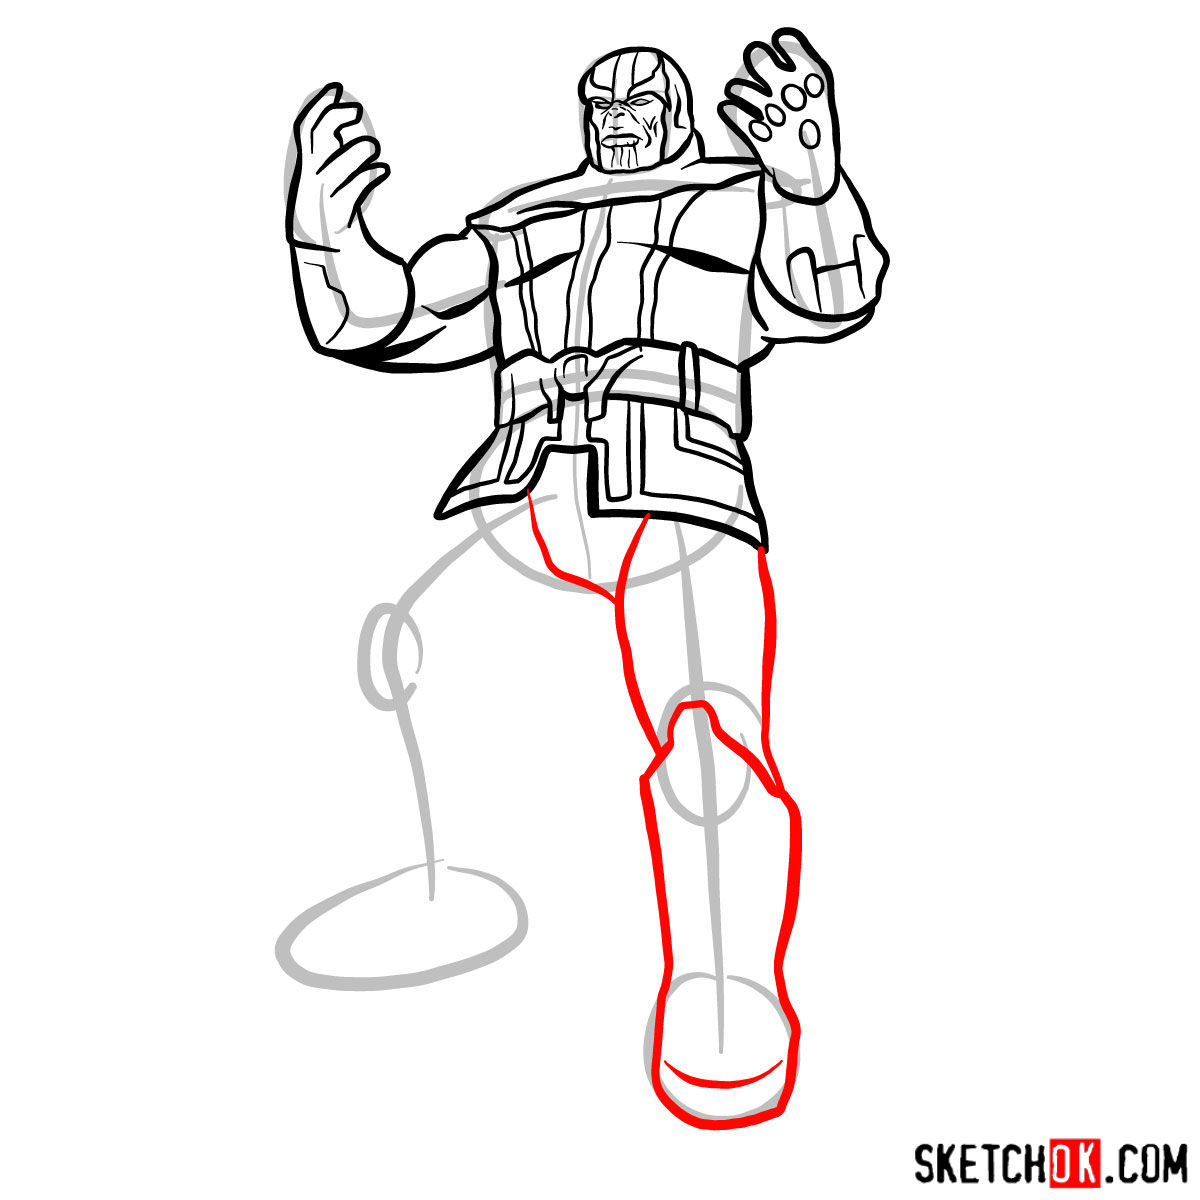 How to draw Thanos with 5 Infinity Stones - step 13